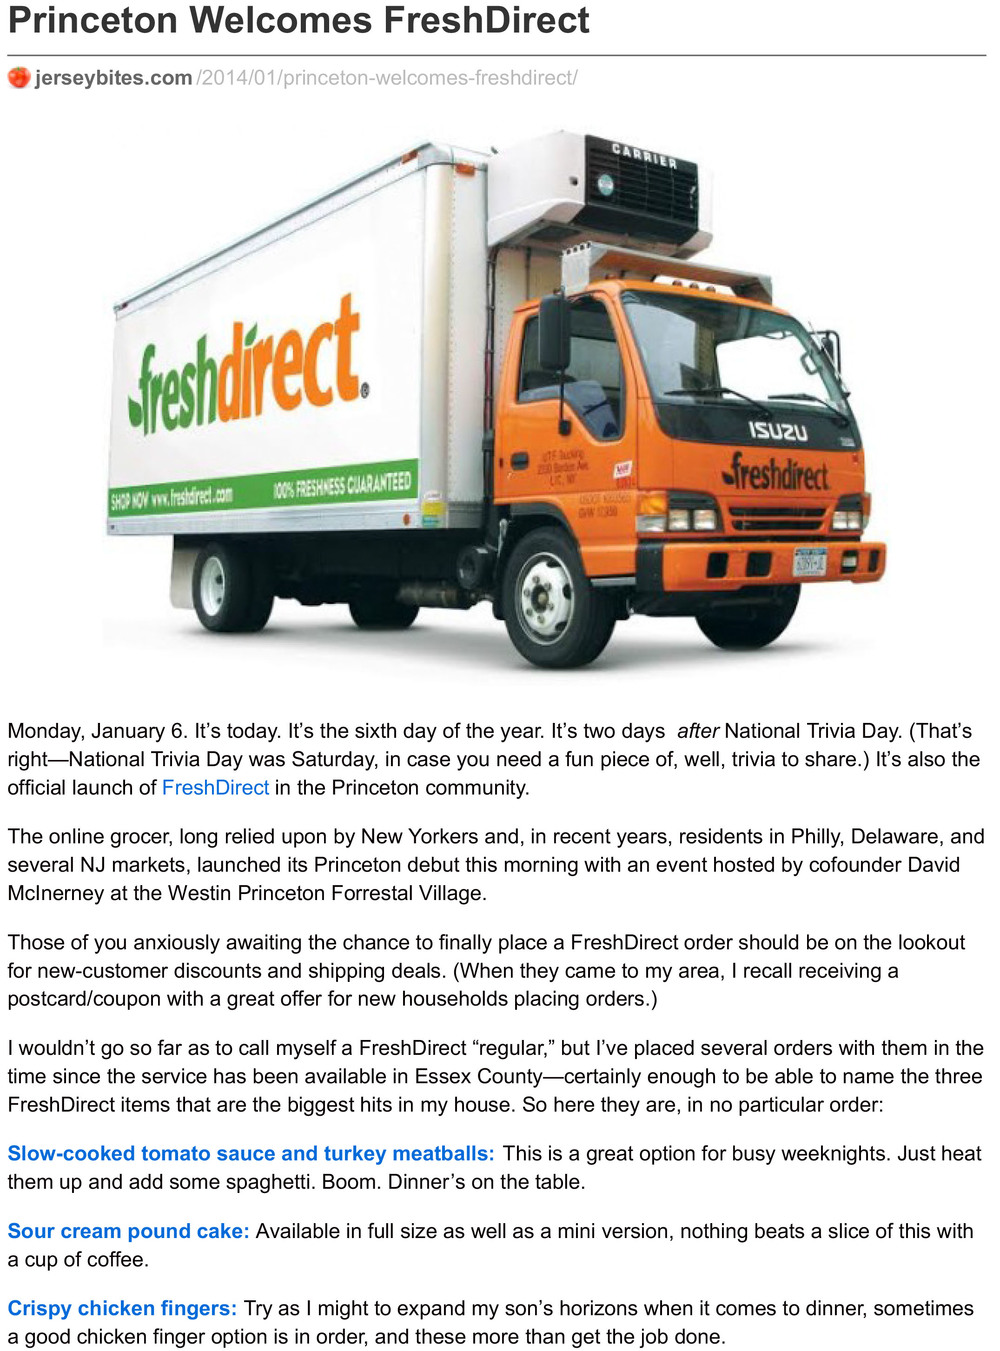 jerseybites.com-Princeton_Welcomes_FreshDirect-1.jpg